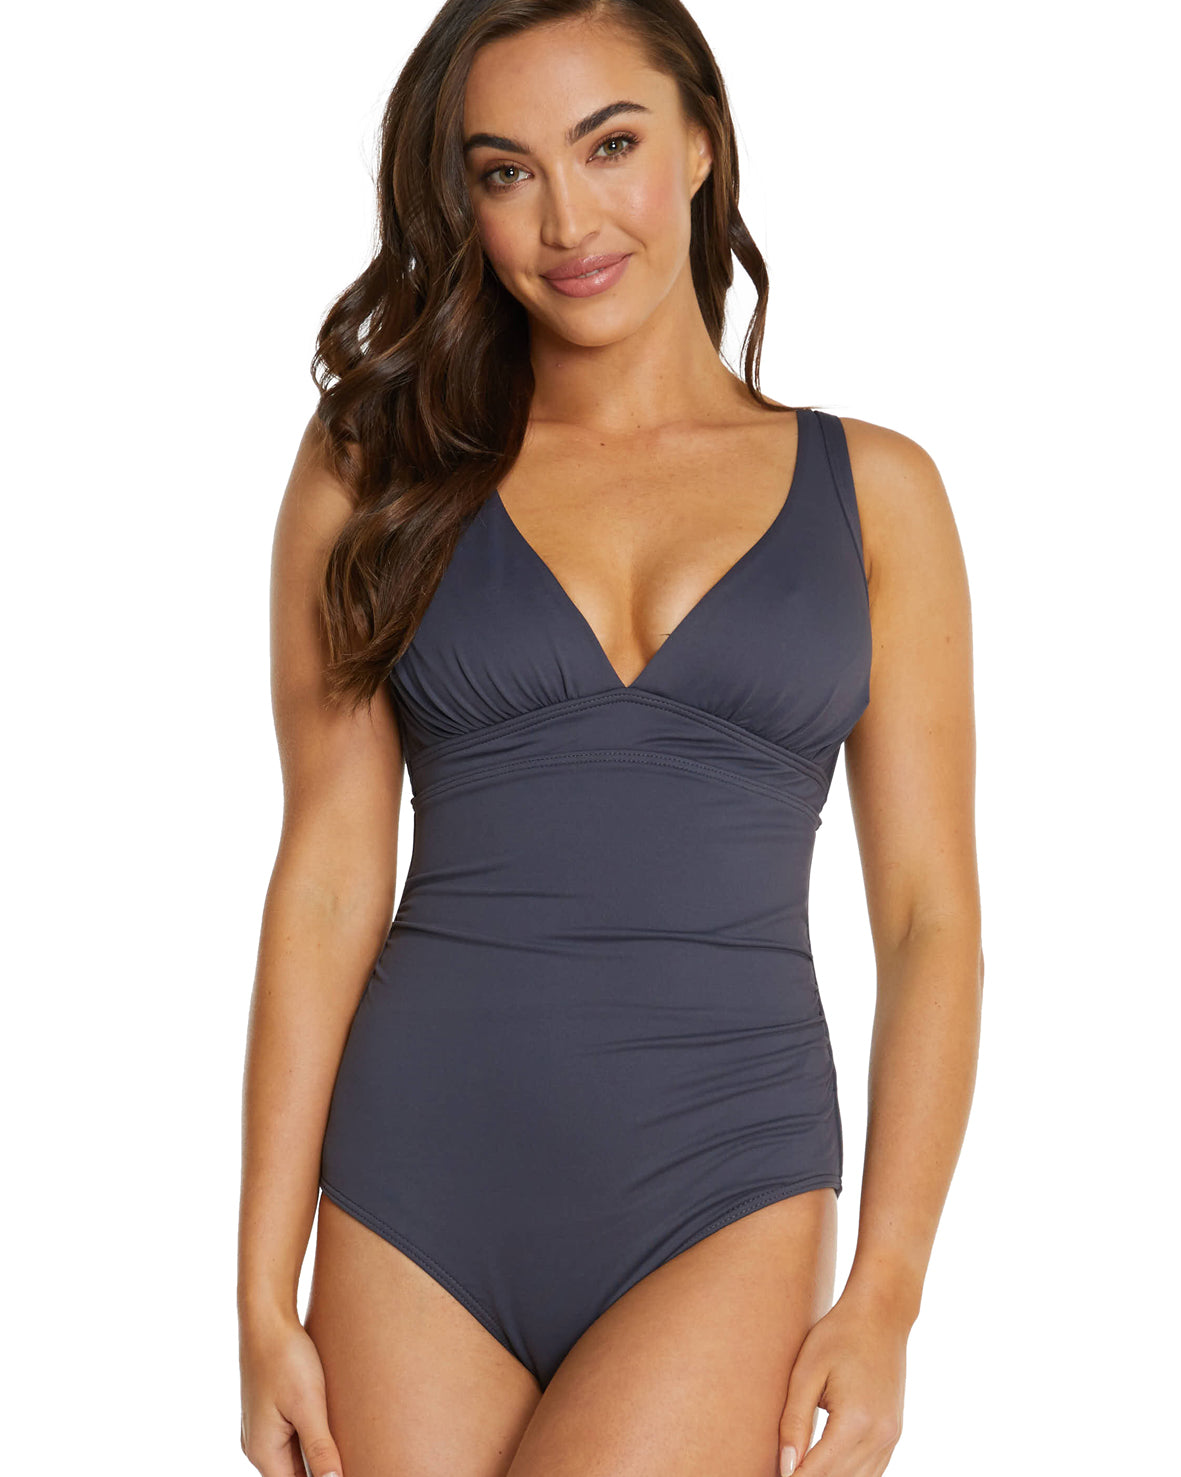 ECO ESSENTIALS E/F CUP LONGLINE ONE PIECE SWIMSUIT